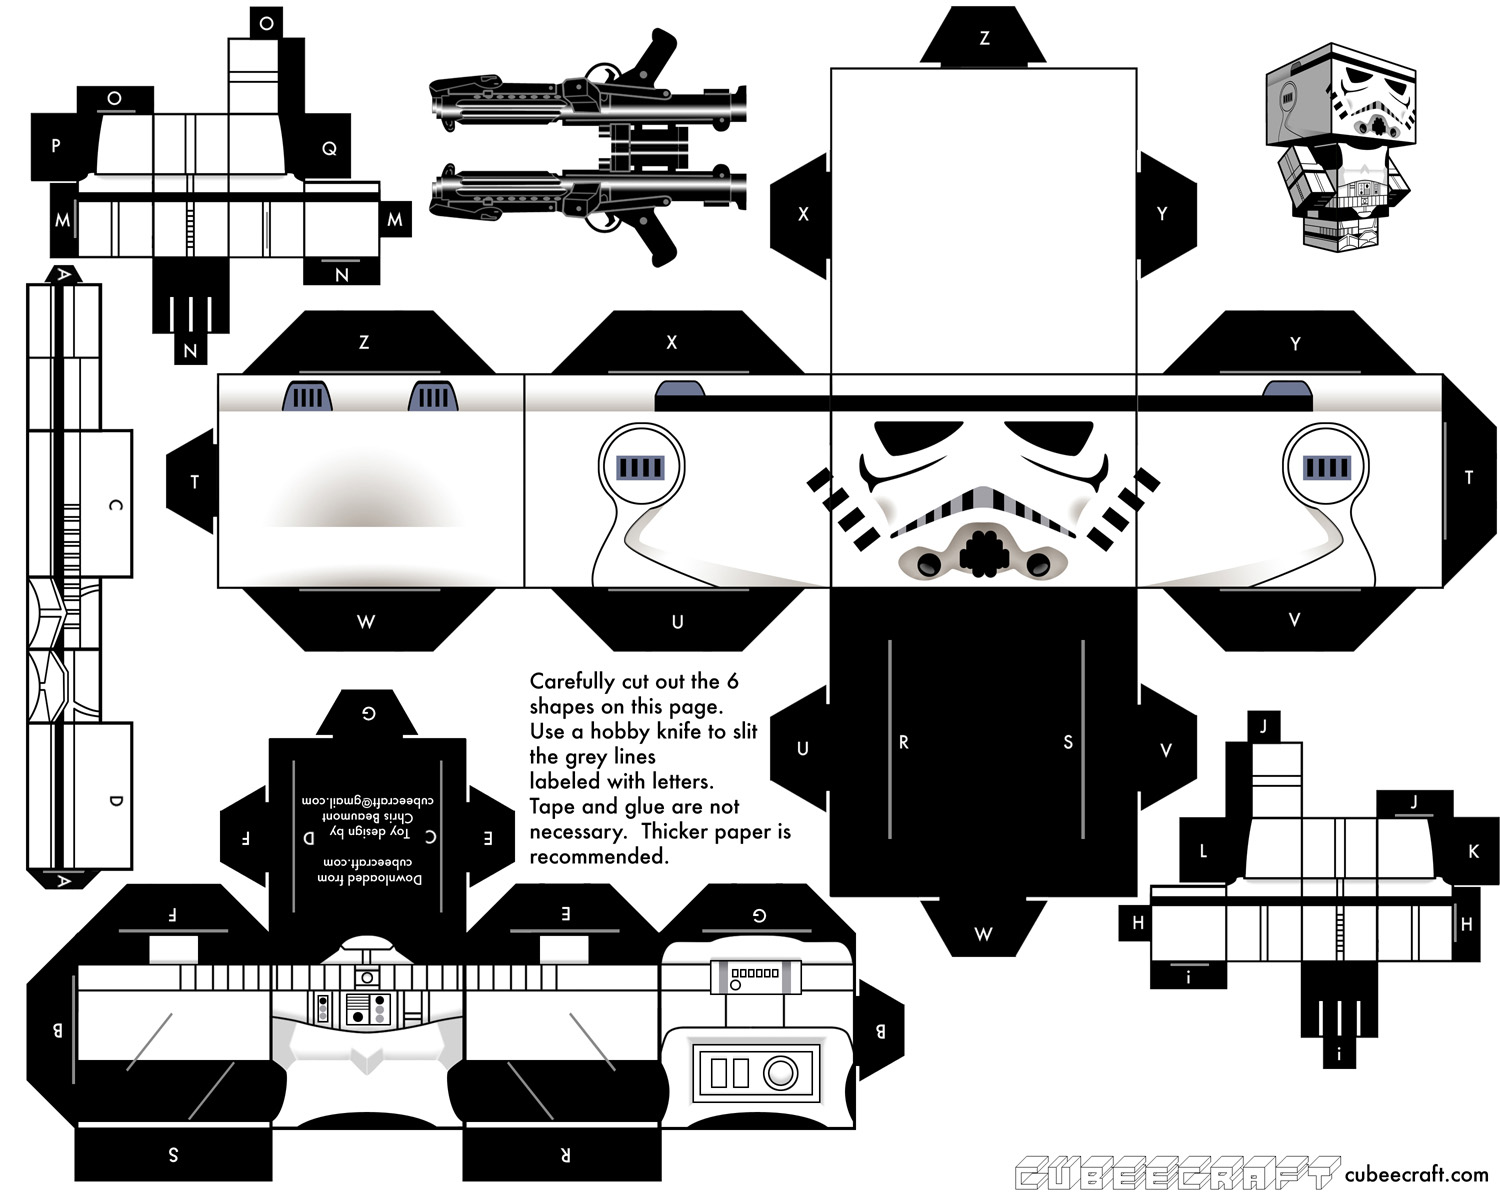 Lsd Magazine Cubeecraft Paper Toys To Cut Out And Build